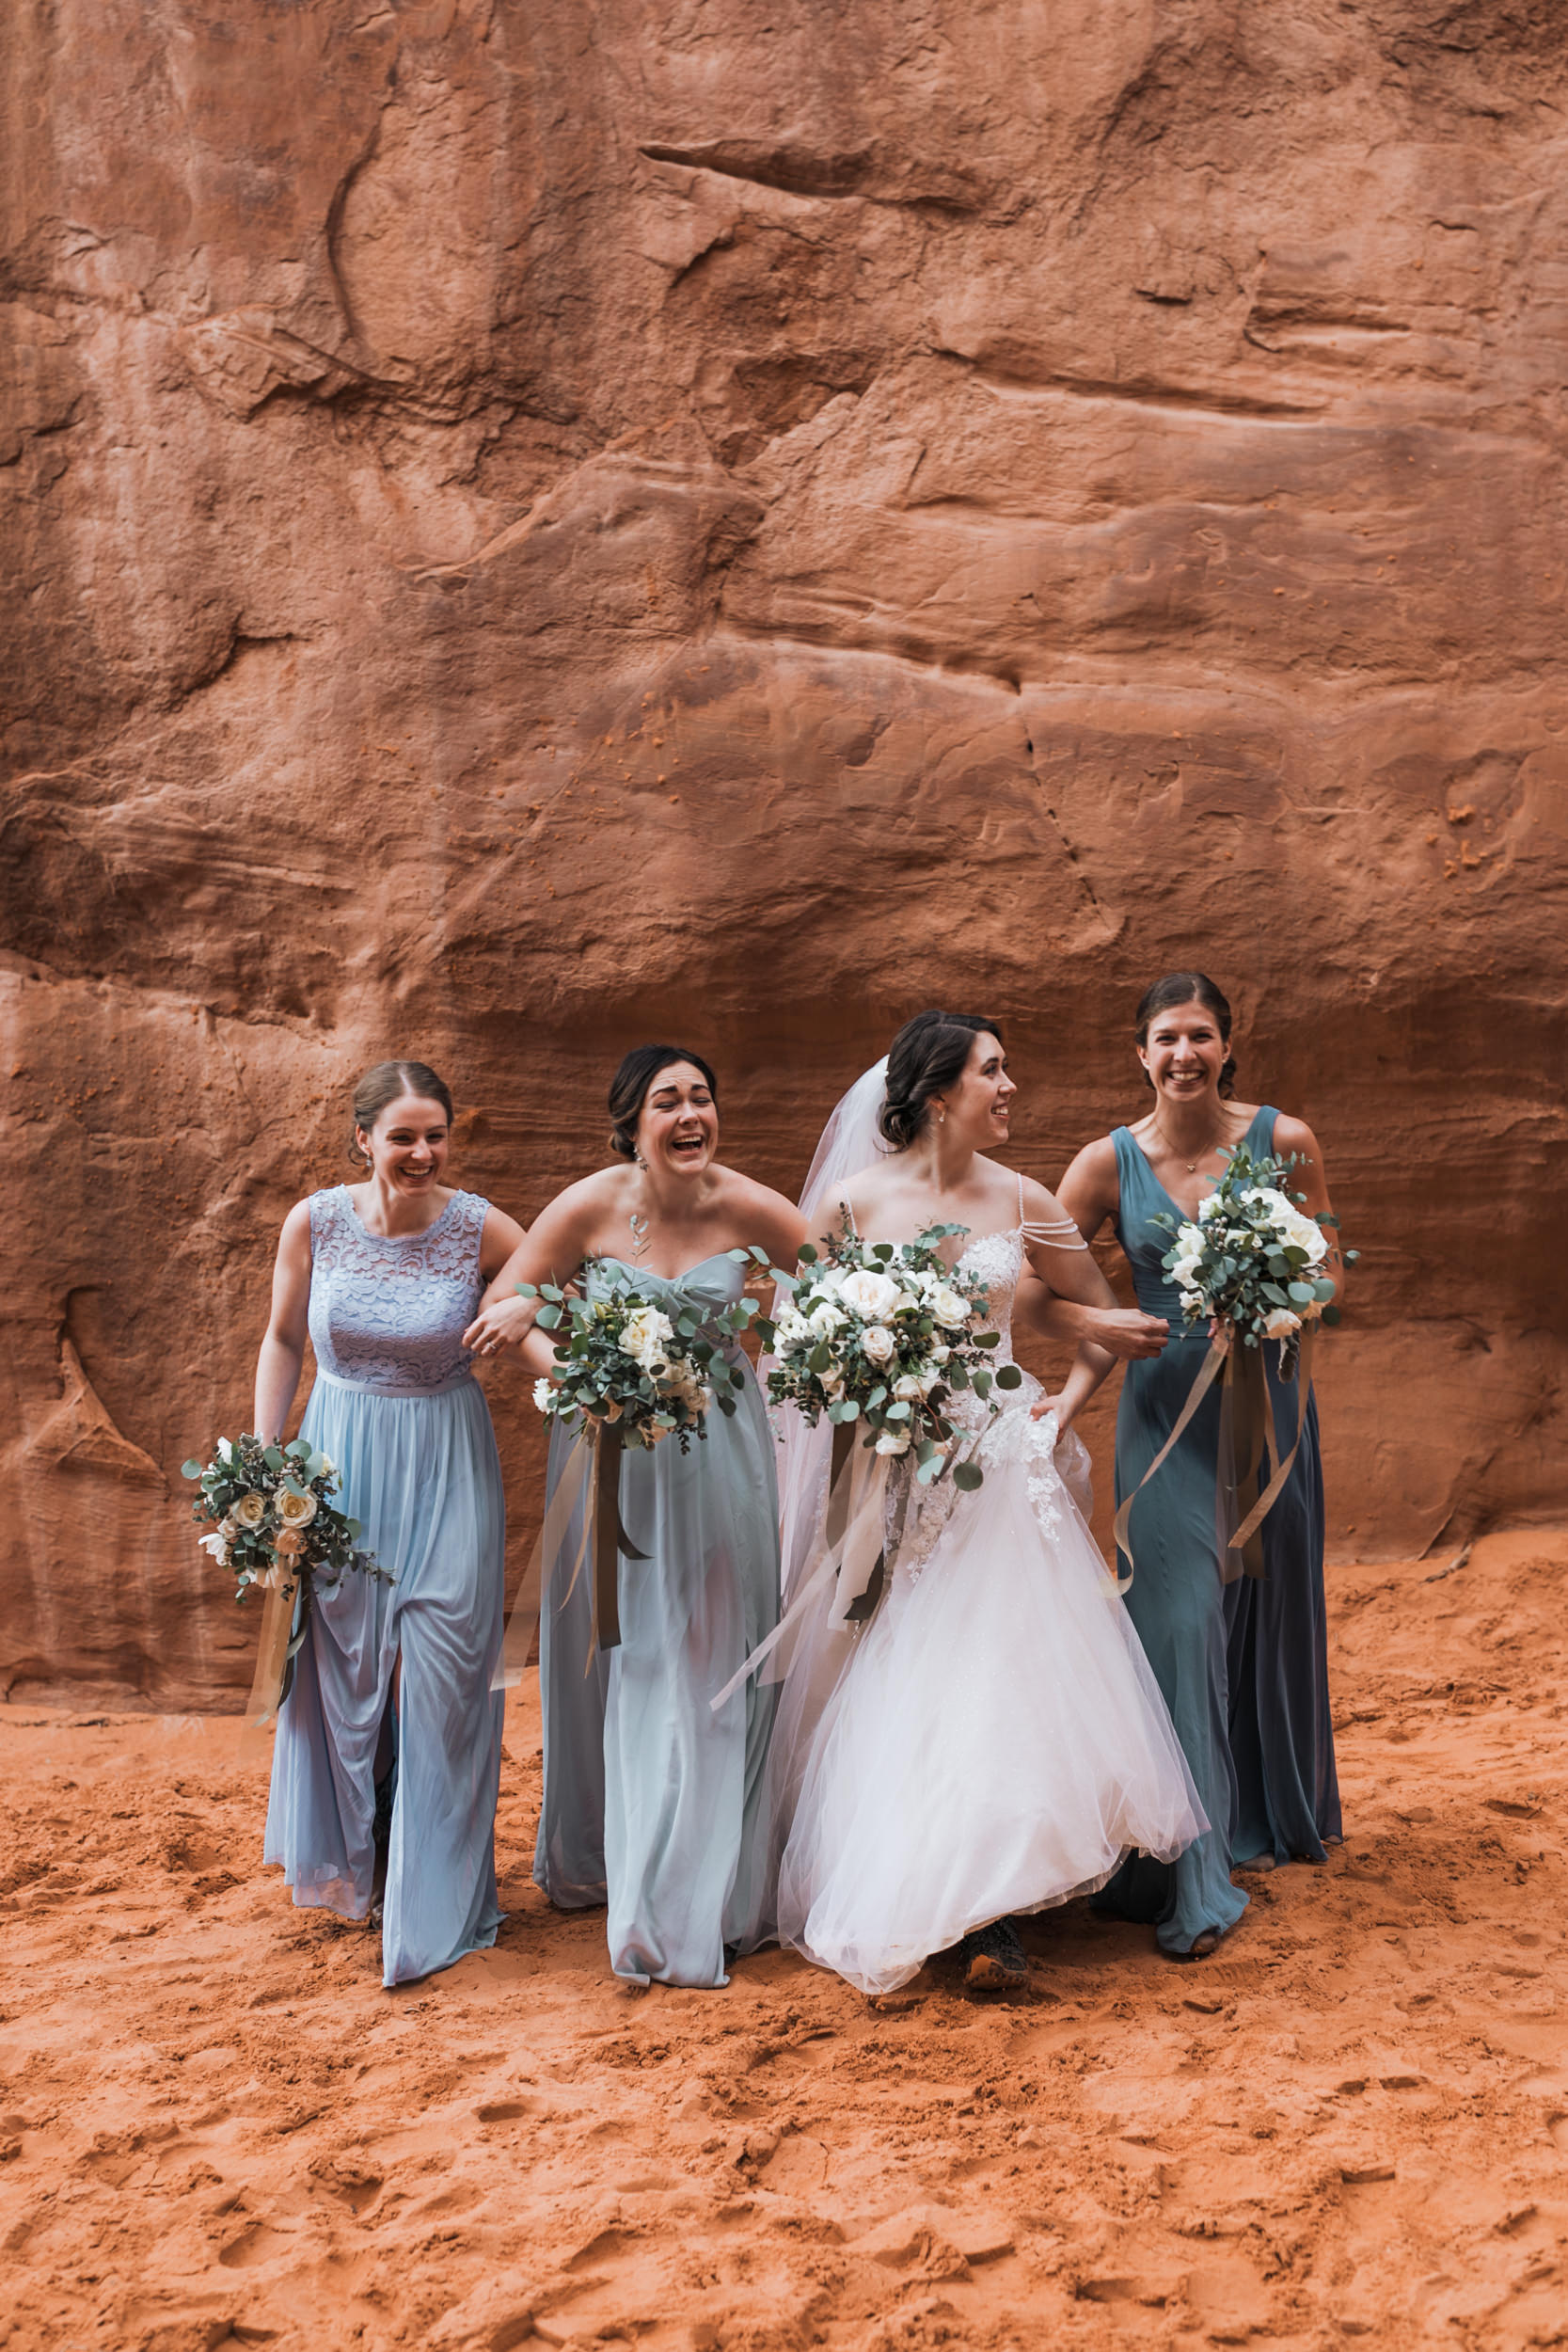 Claire and her bridesmaids enjoy a little moment together after their ceremony. It was their first time to Moab!